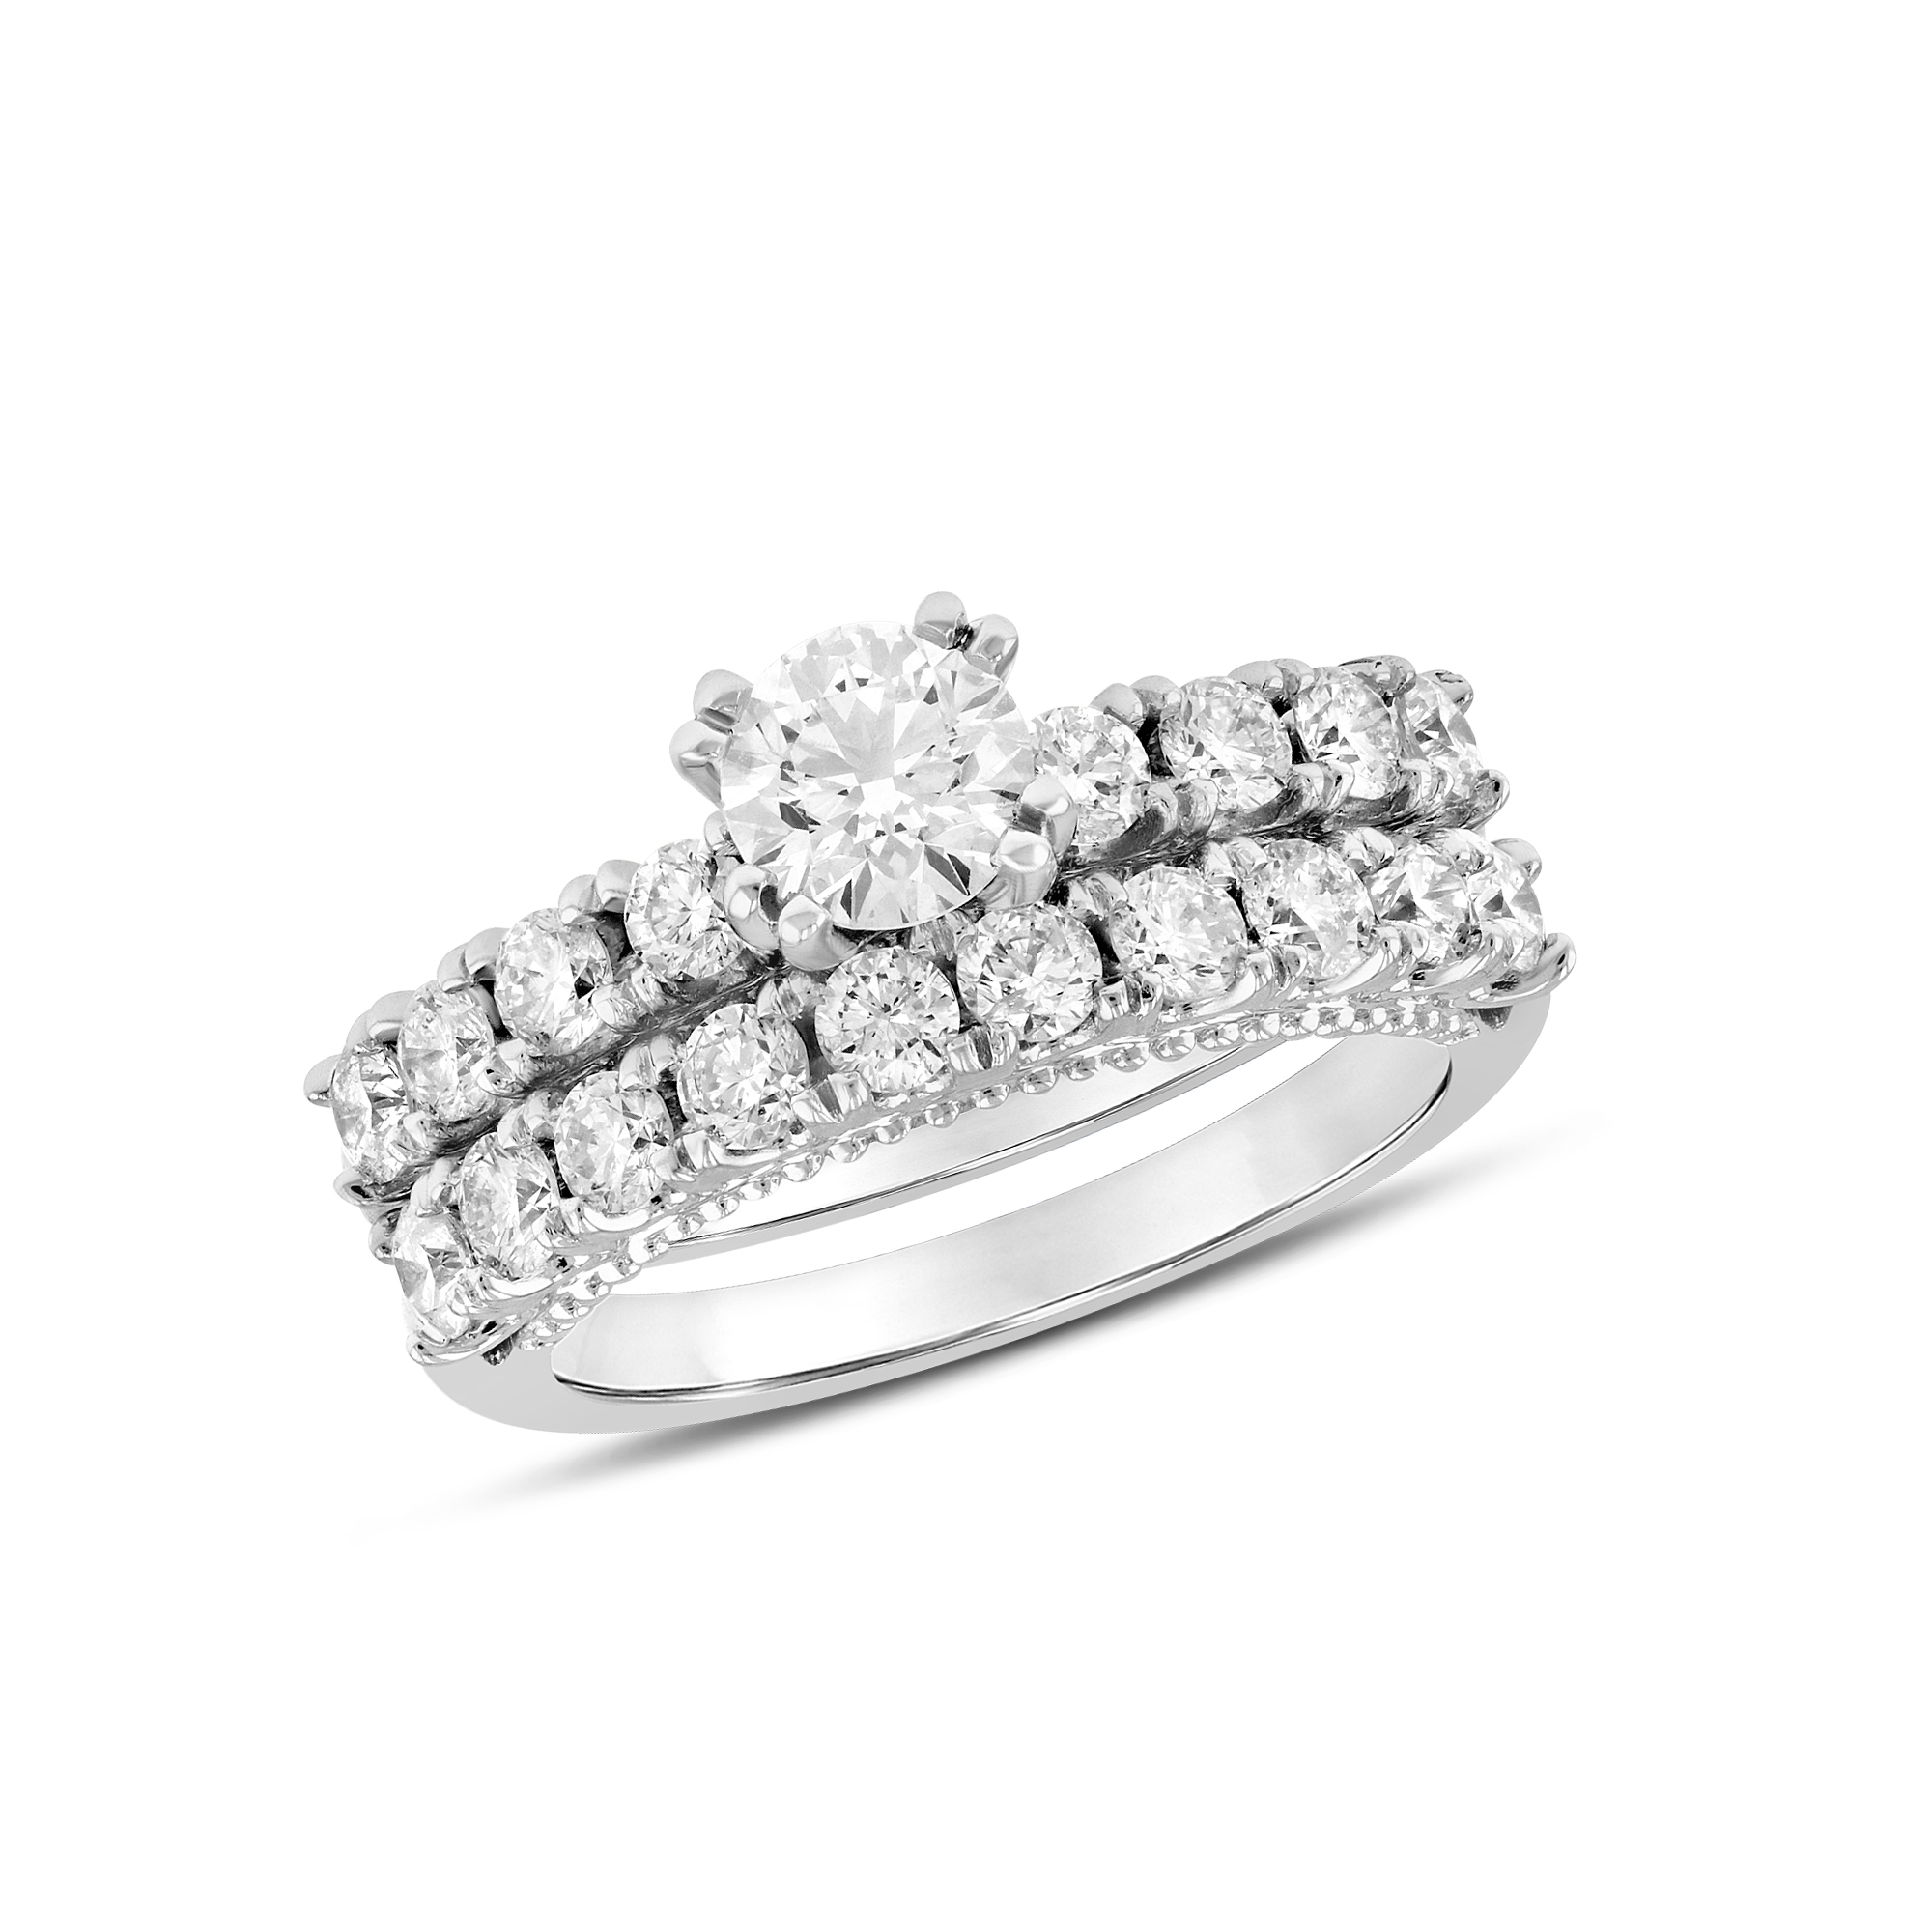 1.95ctw Diamond Engagement Ring Set in 14k White Gold